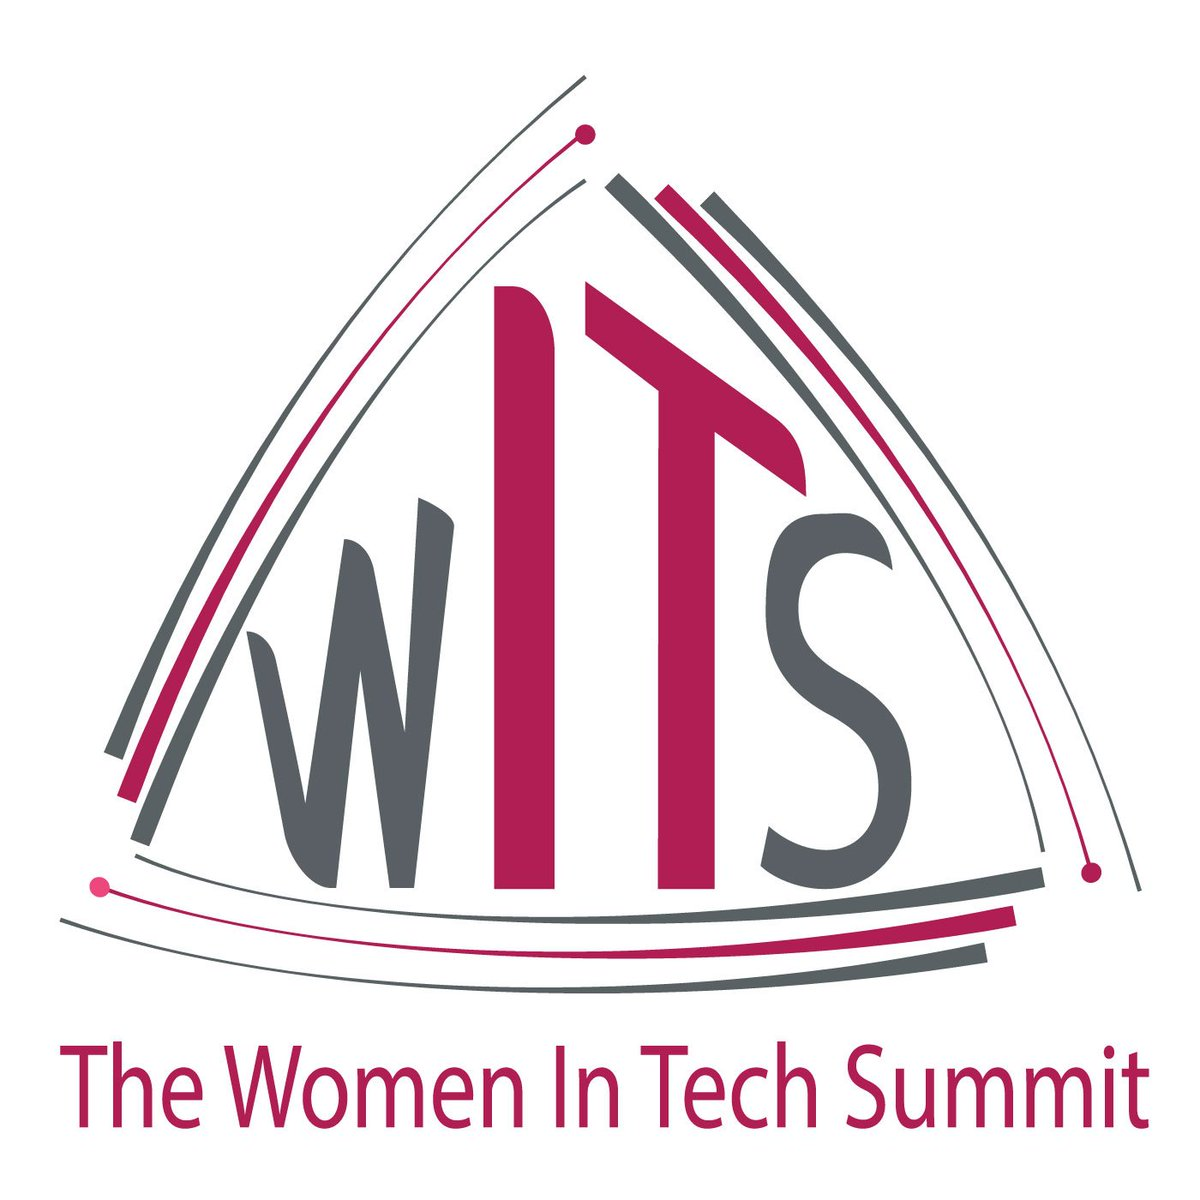 In October, @RTPfrontier will host the @WomenTechSummit! @GloriaBell gave us the scoop. https://t.co/LA3ltPbbjH https://t.co/D4yUHFuODh